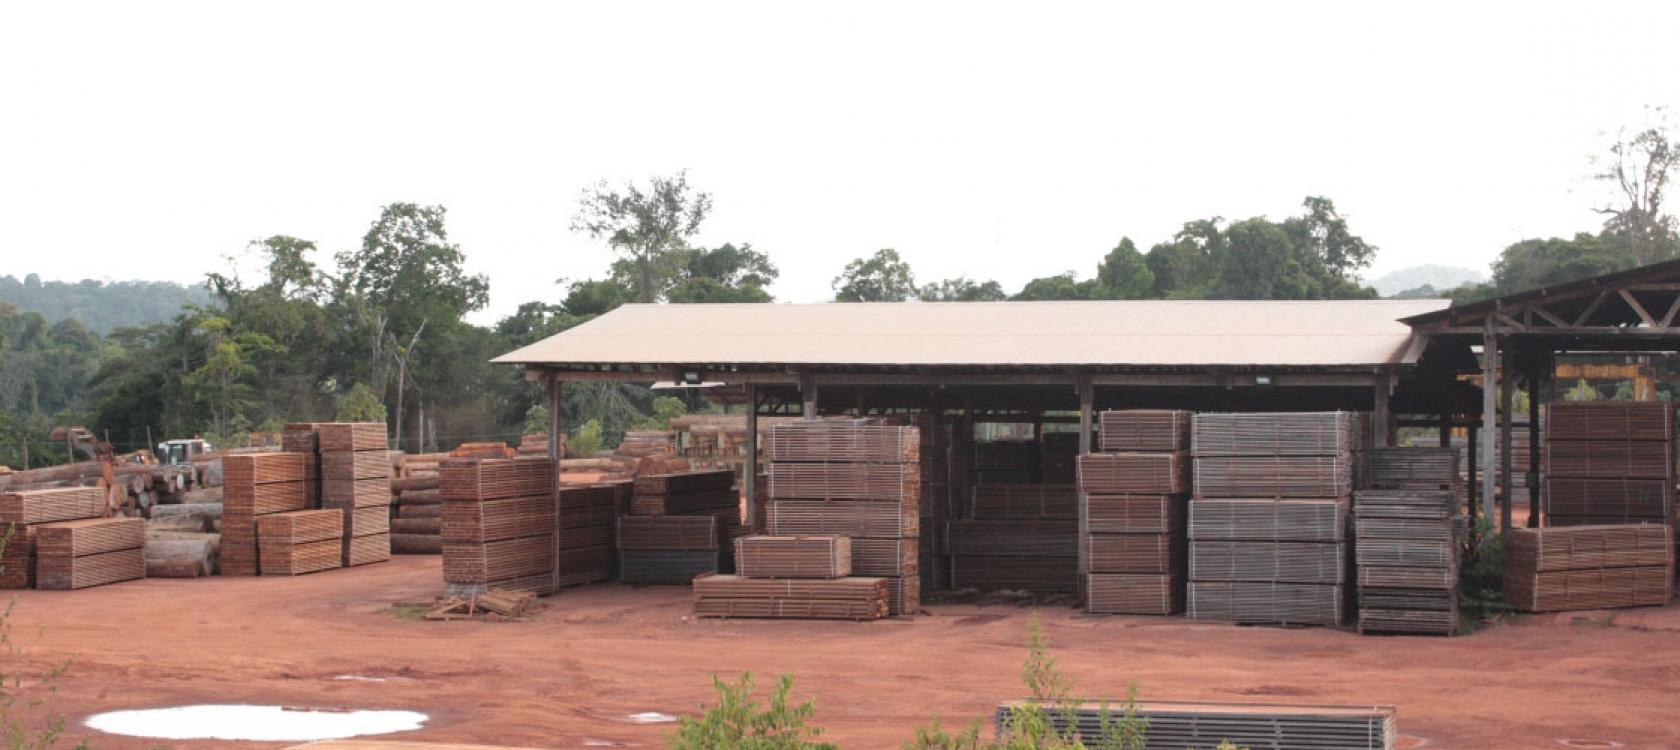 Cacao sawmill, biomass power station, Voltalia, French Guiana